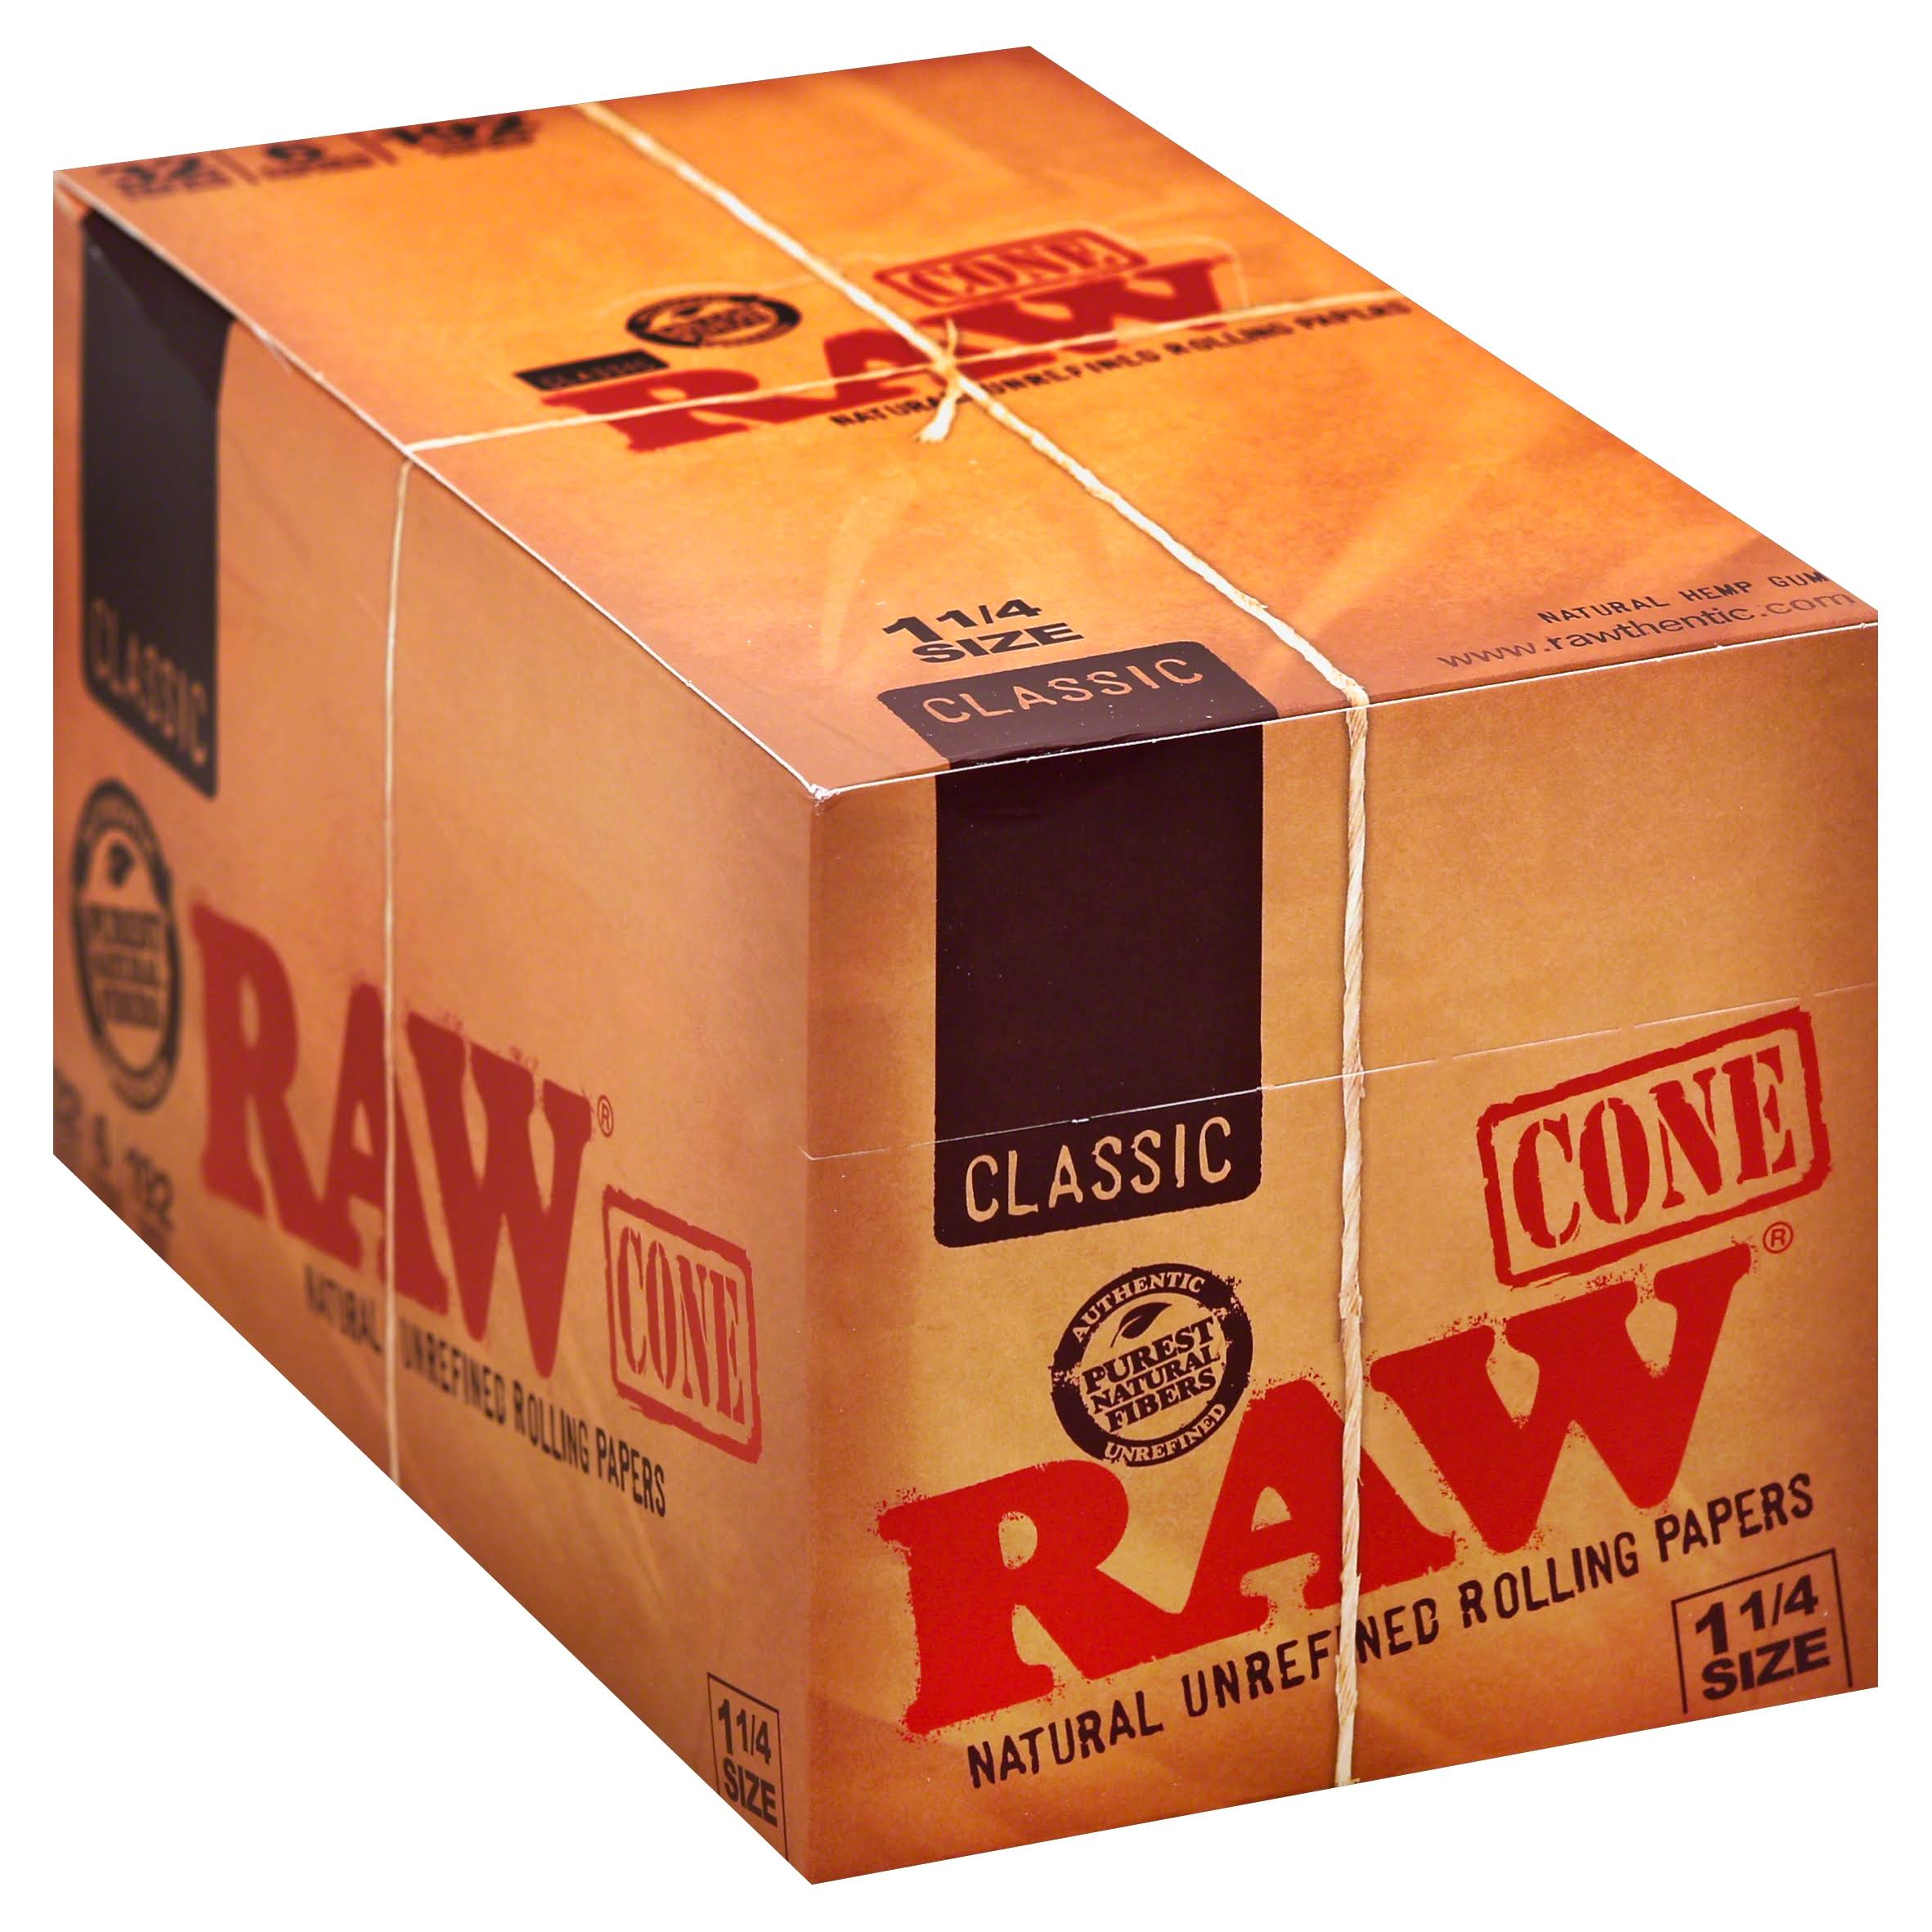 Raw Cone Rolling Papers, Natural Unrefined, Classic, 1-1/4 Size - 32 packs